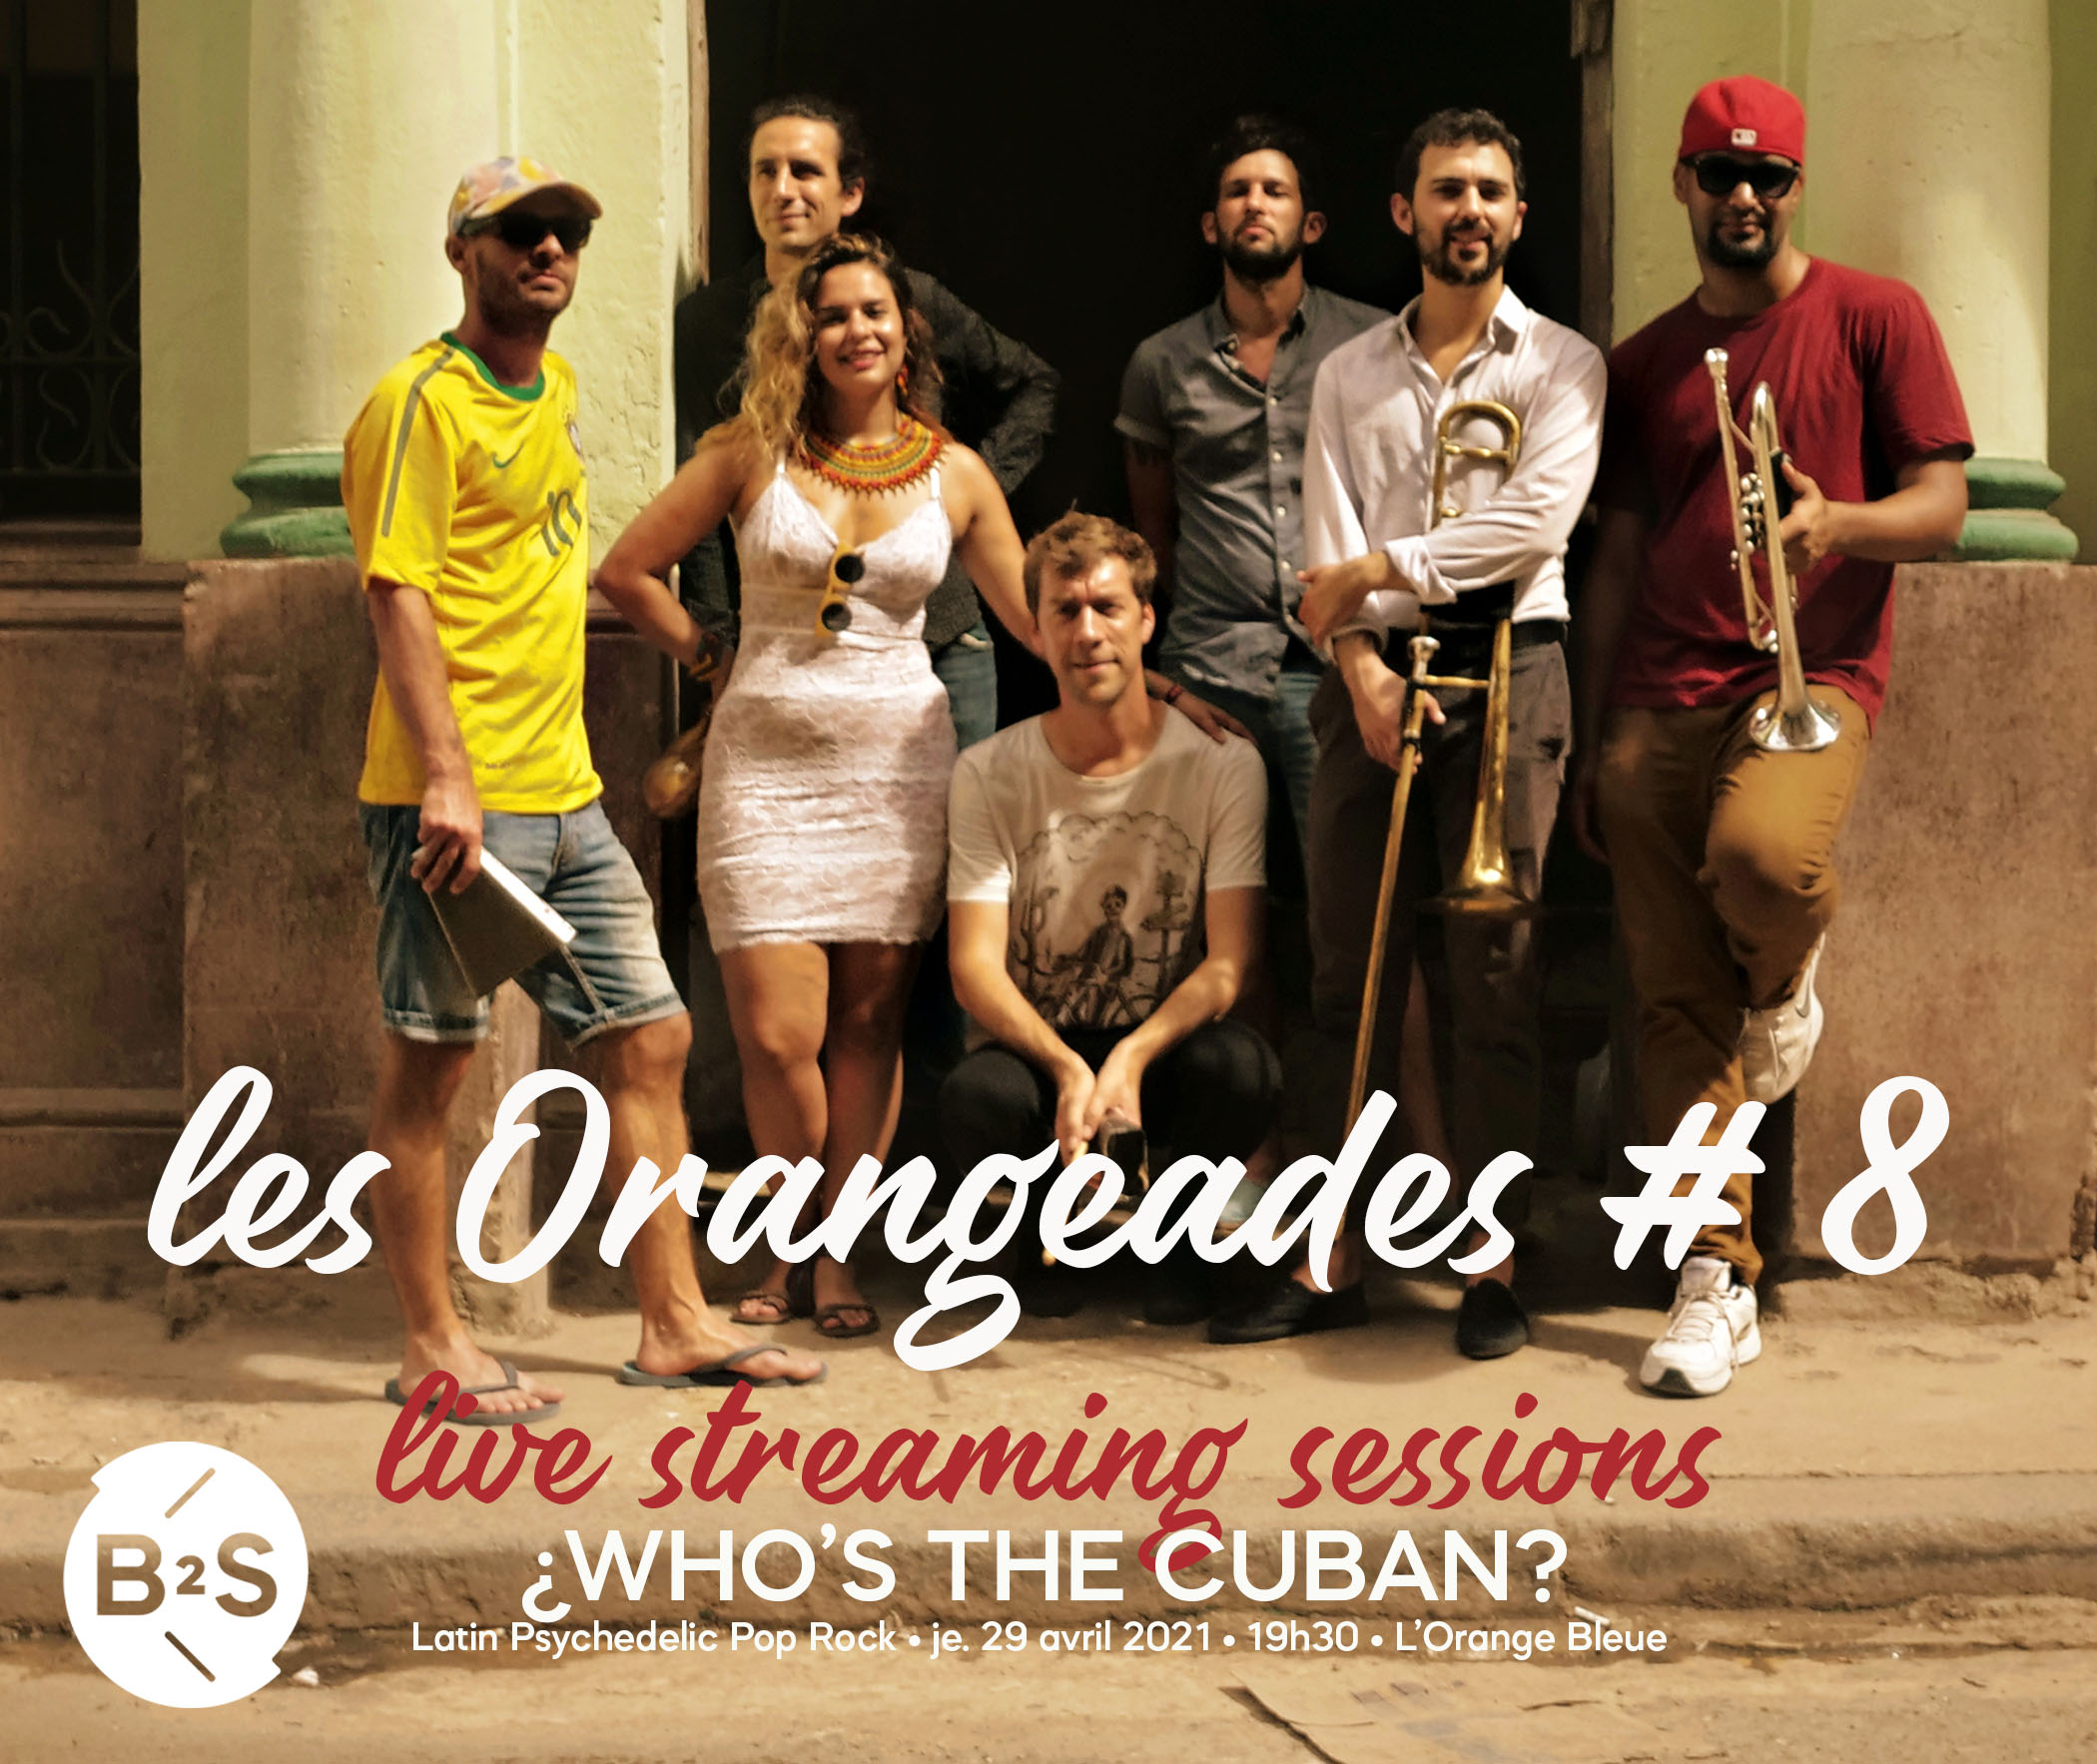 ¿WHOS'S THE CUBAN?